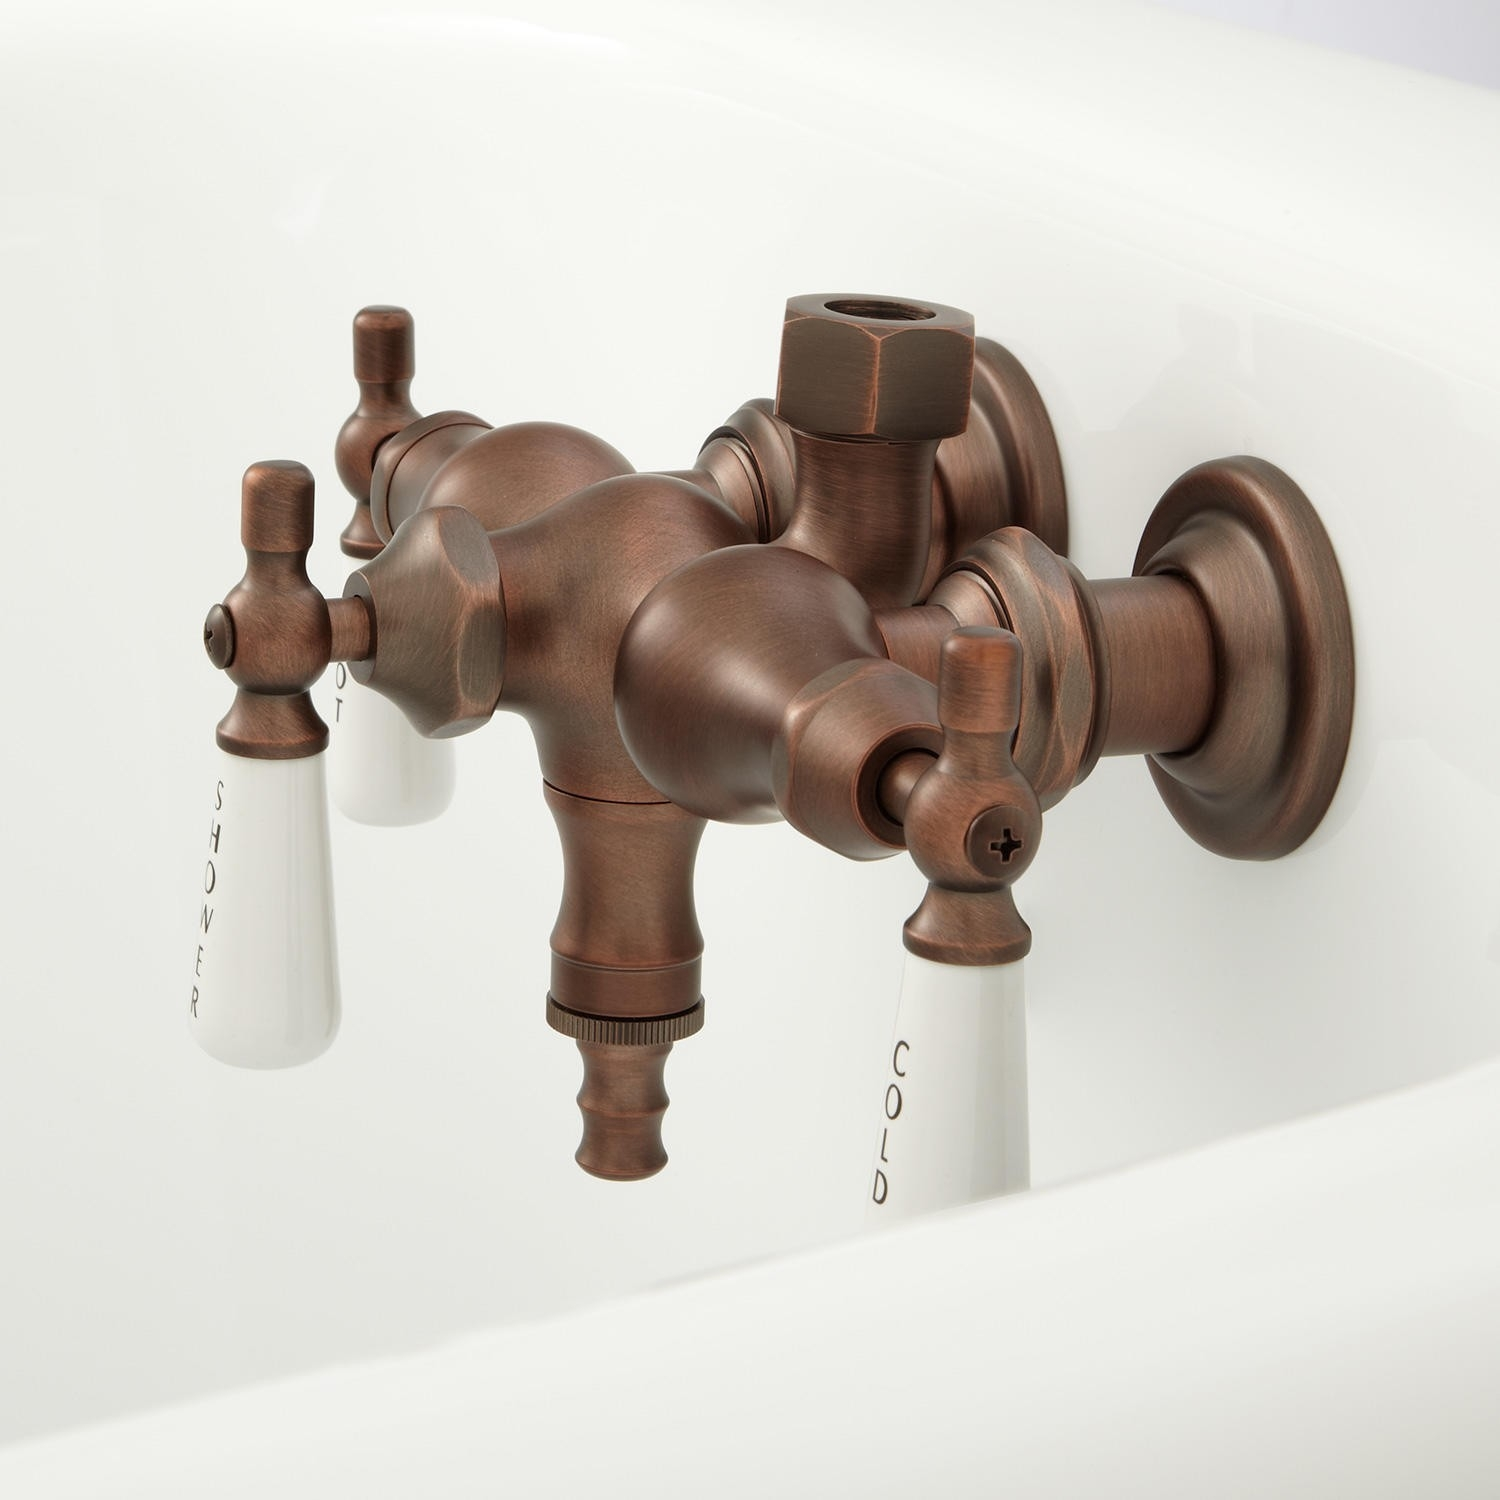 Ideas, clawfoot tub faucets with shower diverter clawfoot tub faucets with shower diverter clawfoot tub diverter valve bathroom 1500 x 1500 1  .